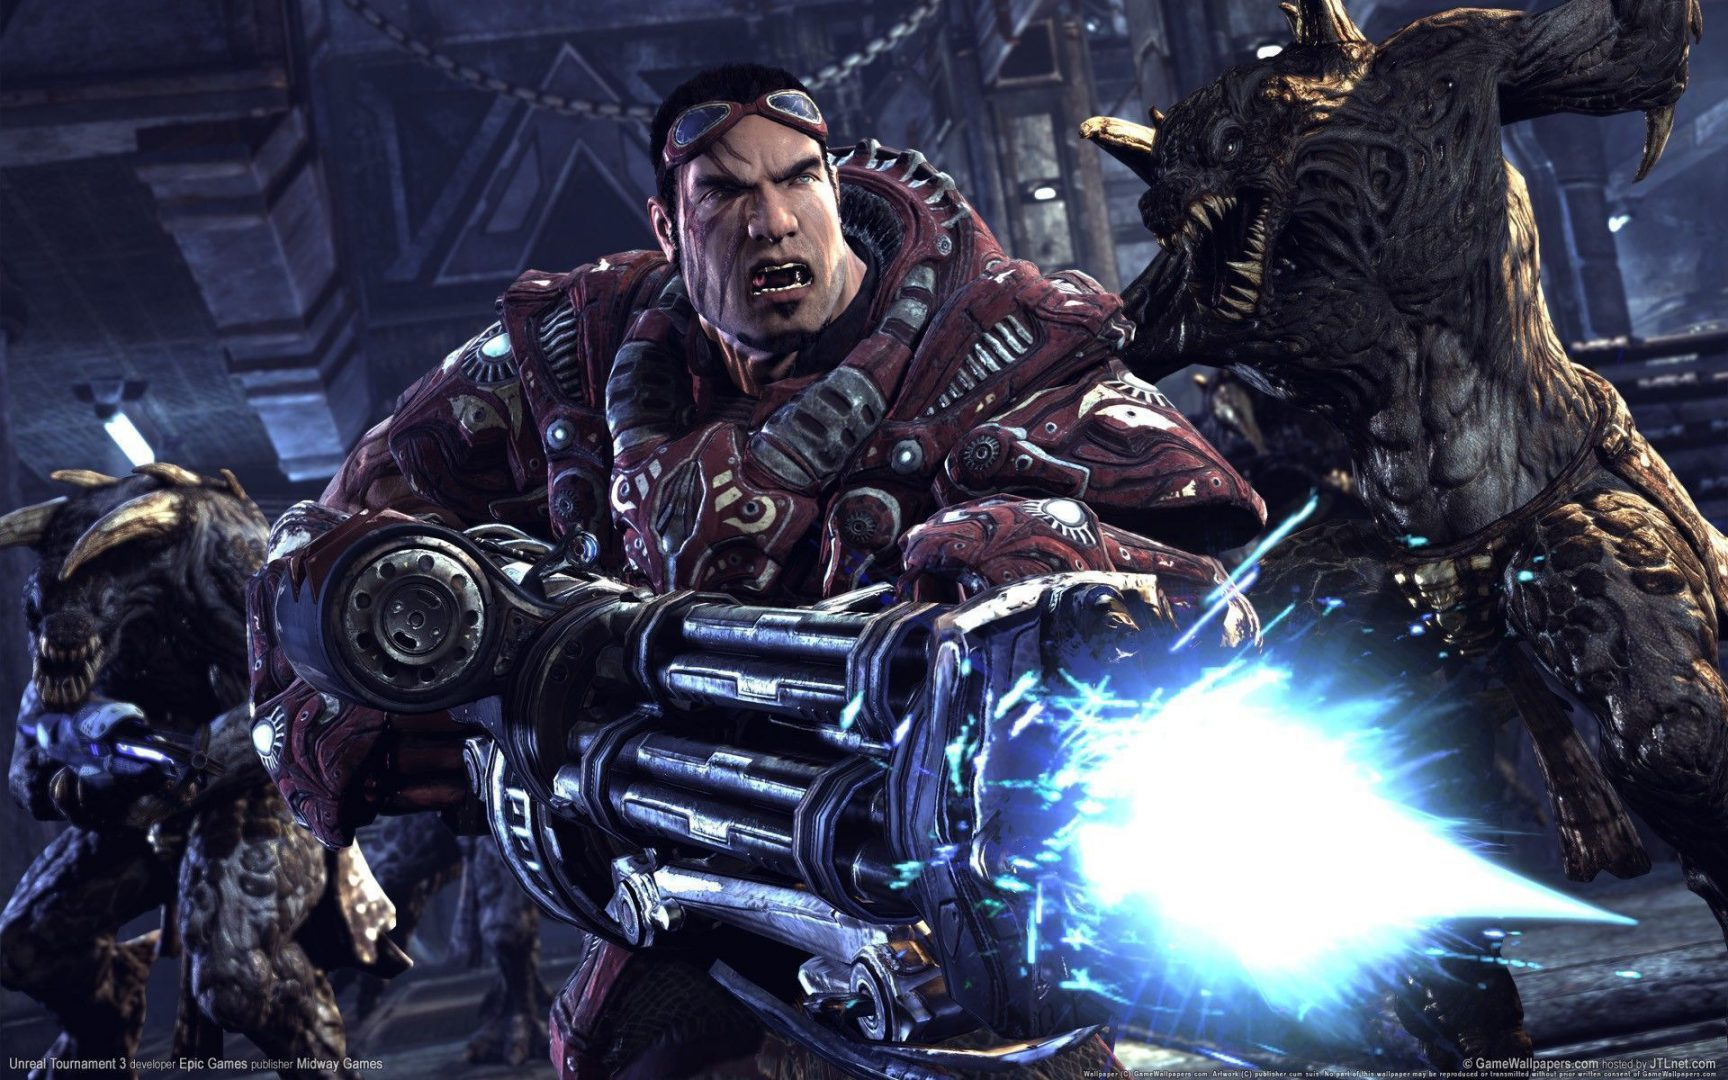 Comparativa De Rendimiento De Unreal Tournament 3